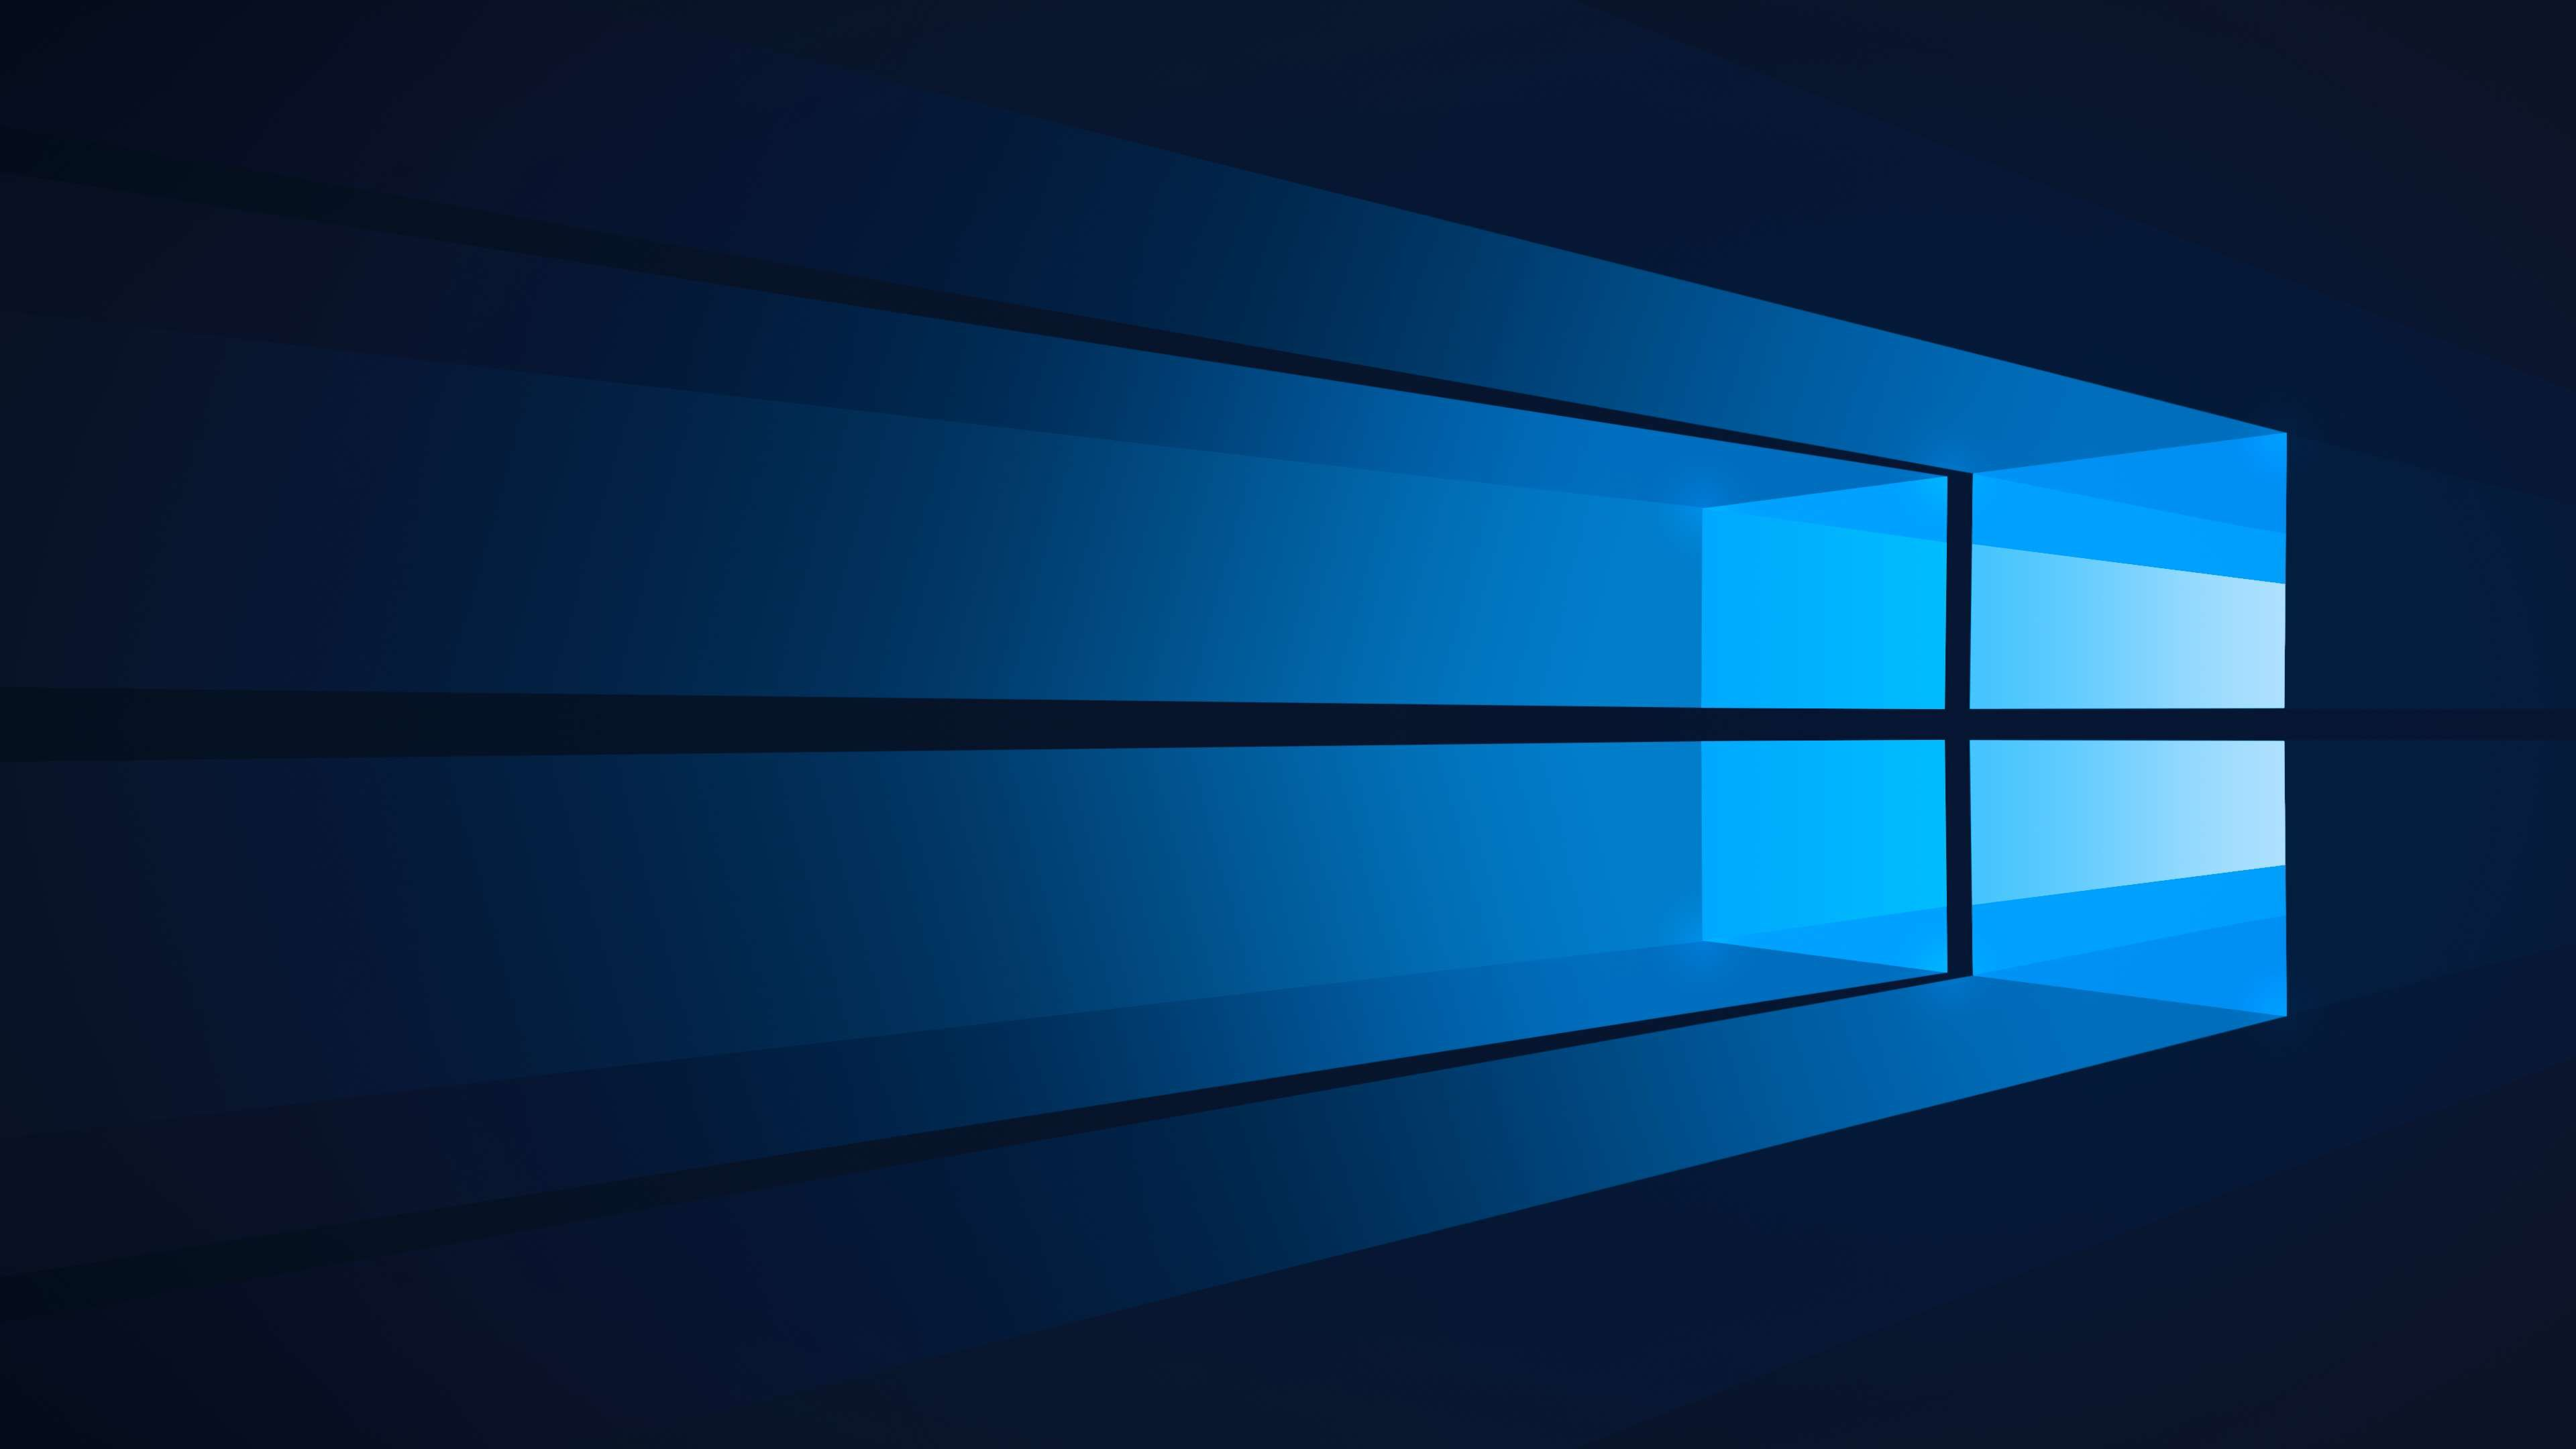 Blue Dark Blue Flat Windows Windows 10 Windows 10 Desktop Wallpapers Backgrounds Windows Wallpaper